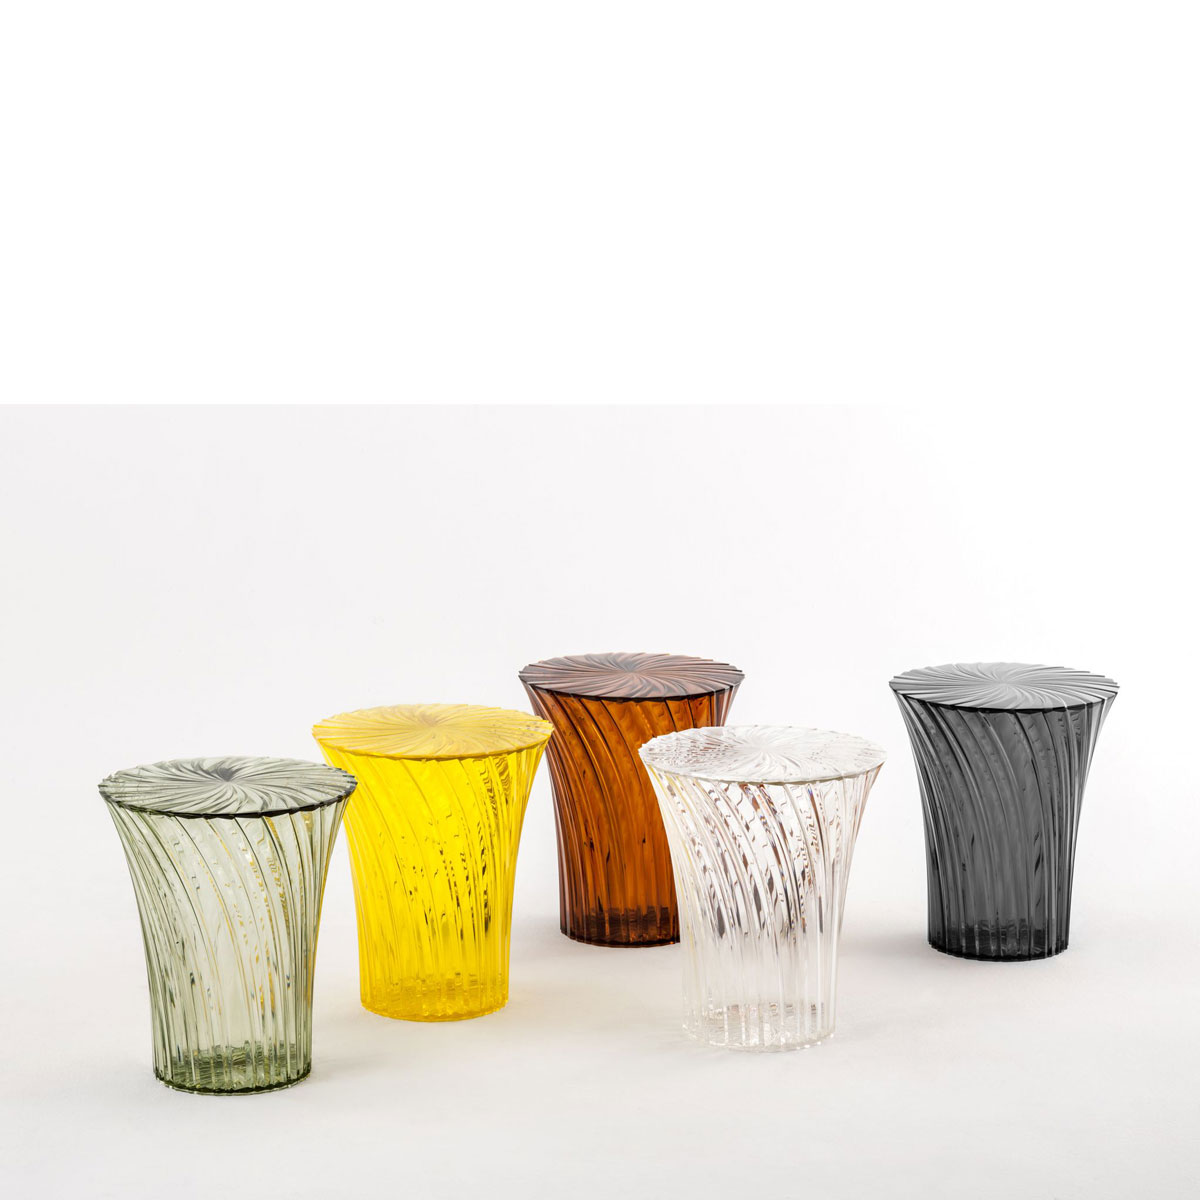 kartell sparkle stool table designed by tokyjin yoshioka -  kartell sparkle stool table